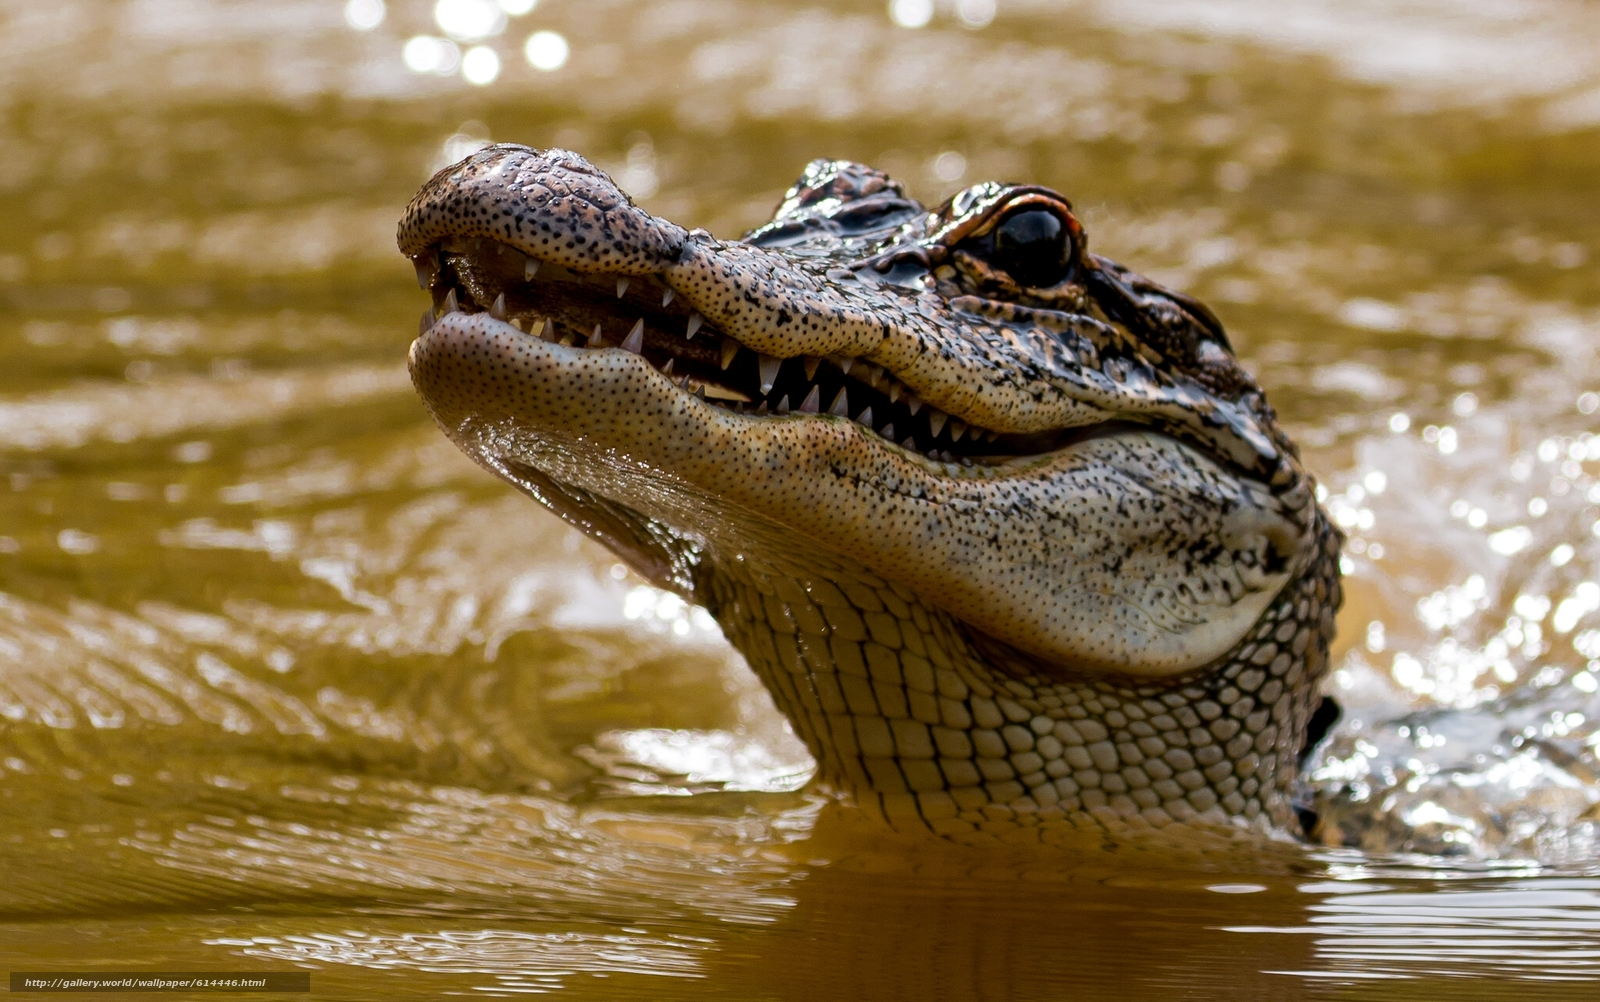 wallpaper 1920x1080 crocodile snout - photo #7